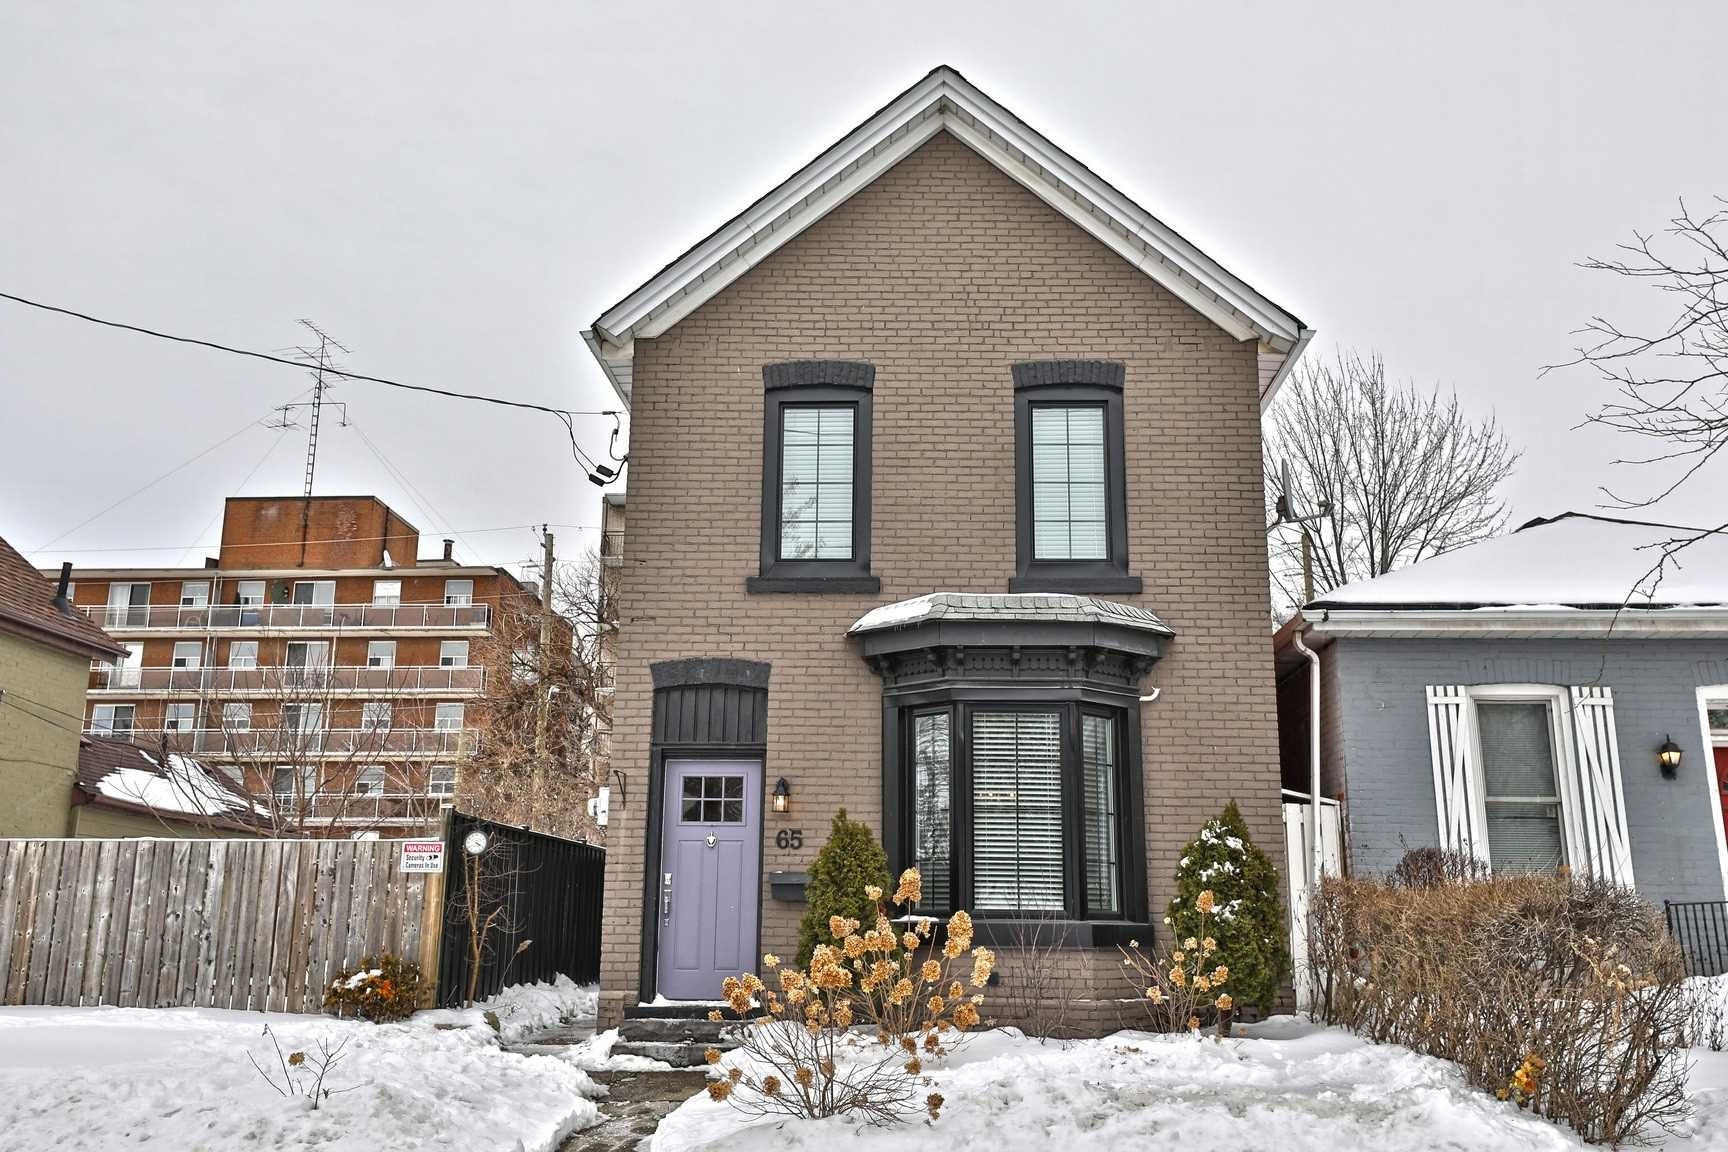 Don't Miss The Chance To Call This Amazing Place Your Home - Located In Sought After Hamilton Neighbourhood This Beautifully Renovated, Bright And Spacious 2 Bedroom Main Floor Unit, Features Large Open Concept Main Floor With High Ceilings, Custom Kitchen W/ Stainless Steel Appliances, Private Parking And A Fully Finished Basement Adding An Additional 656 Sq Ft Of Living Space.  Walking Distance To Go Station, Restaurants,Shops And Parks.